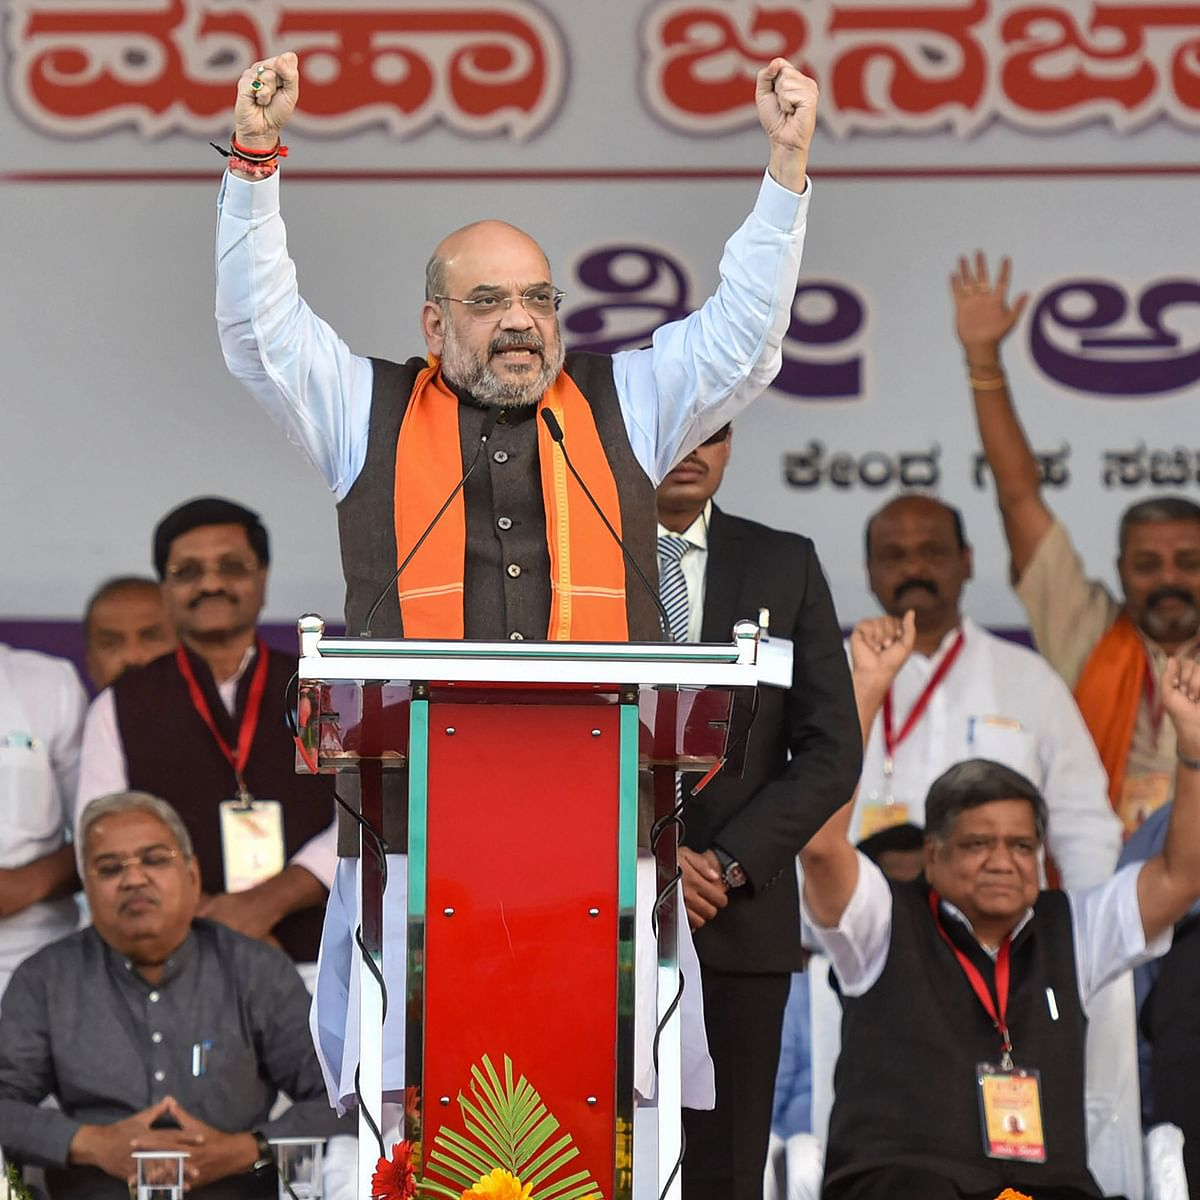 PM Modi flag bearer of Indian culture, tradition: Amit Shah